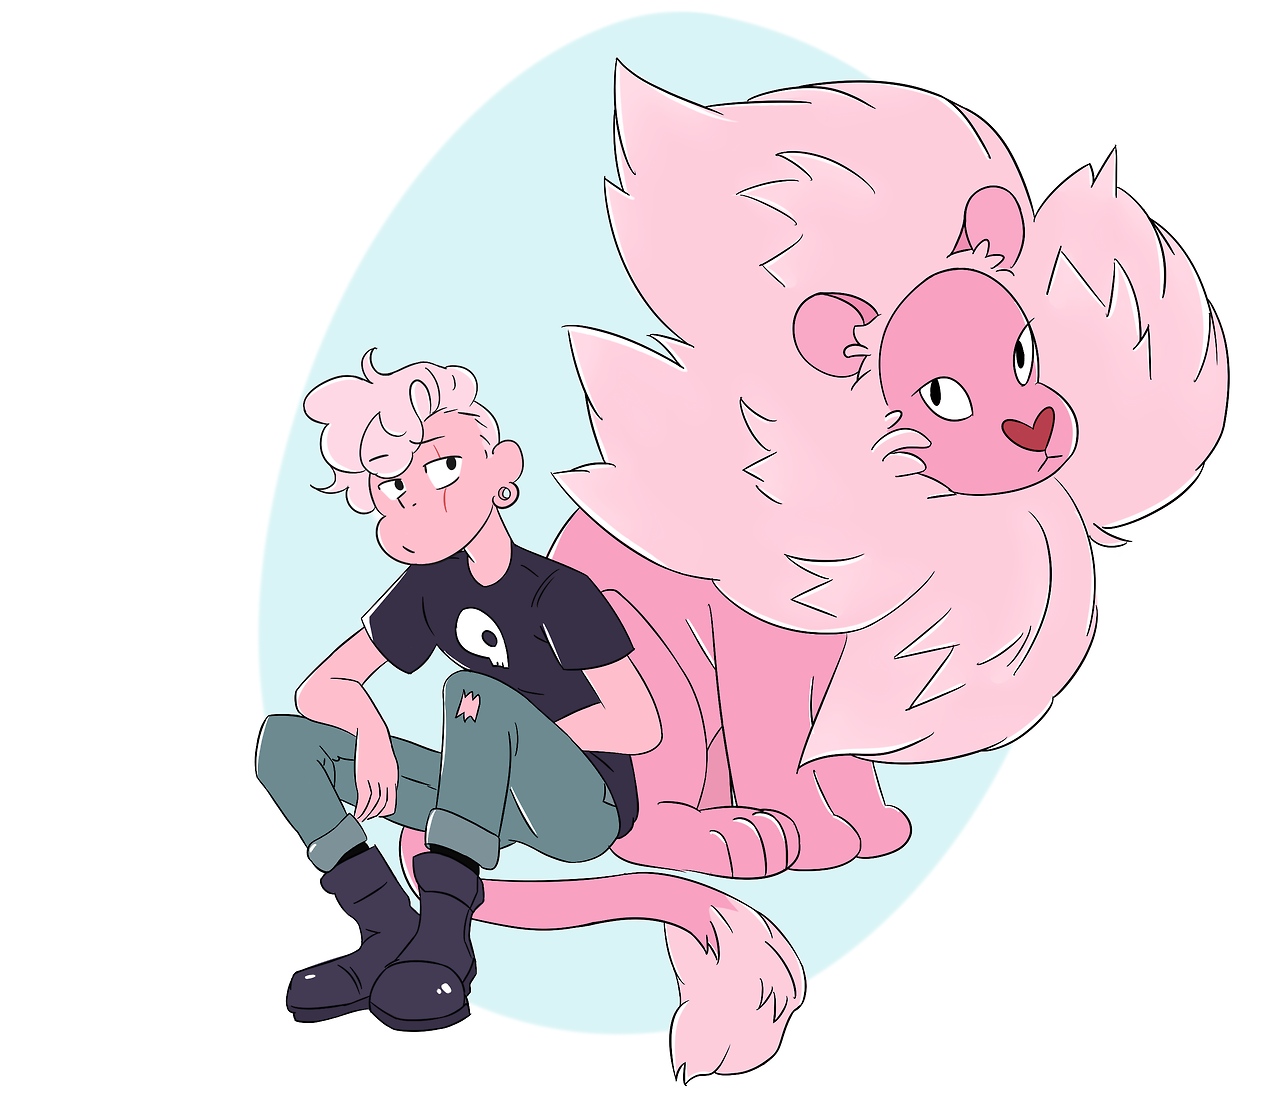 So much Pink I am so proud of this